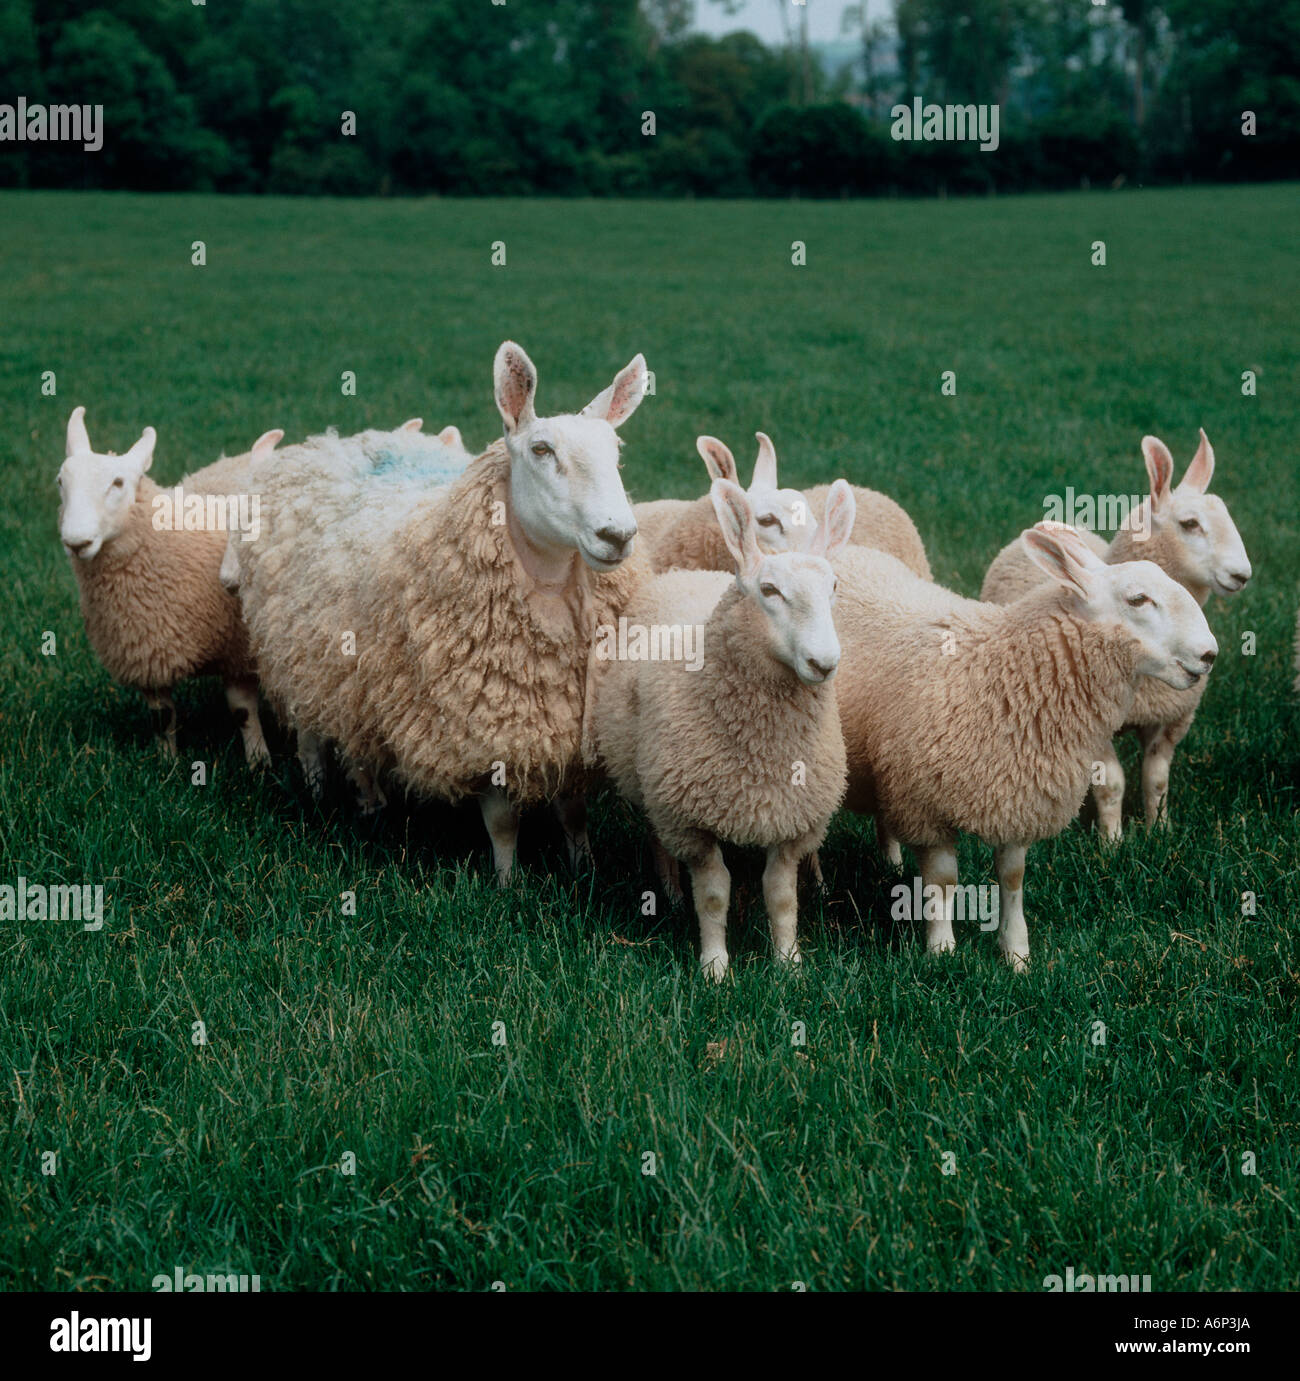 Border Leicester ewe and ewe lambs on Herefordshire pasture - Stock Image